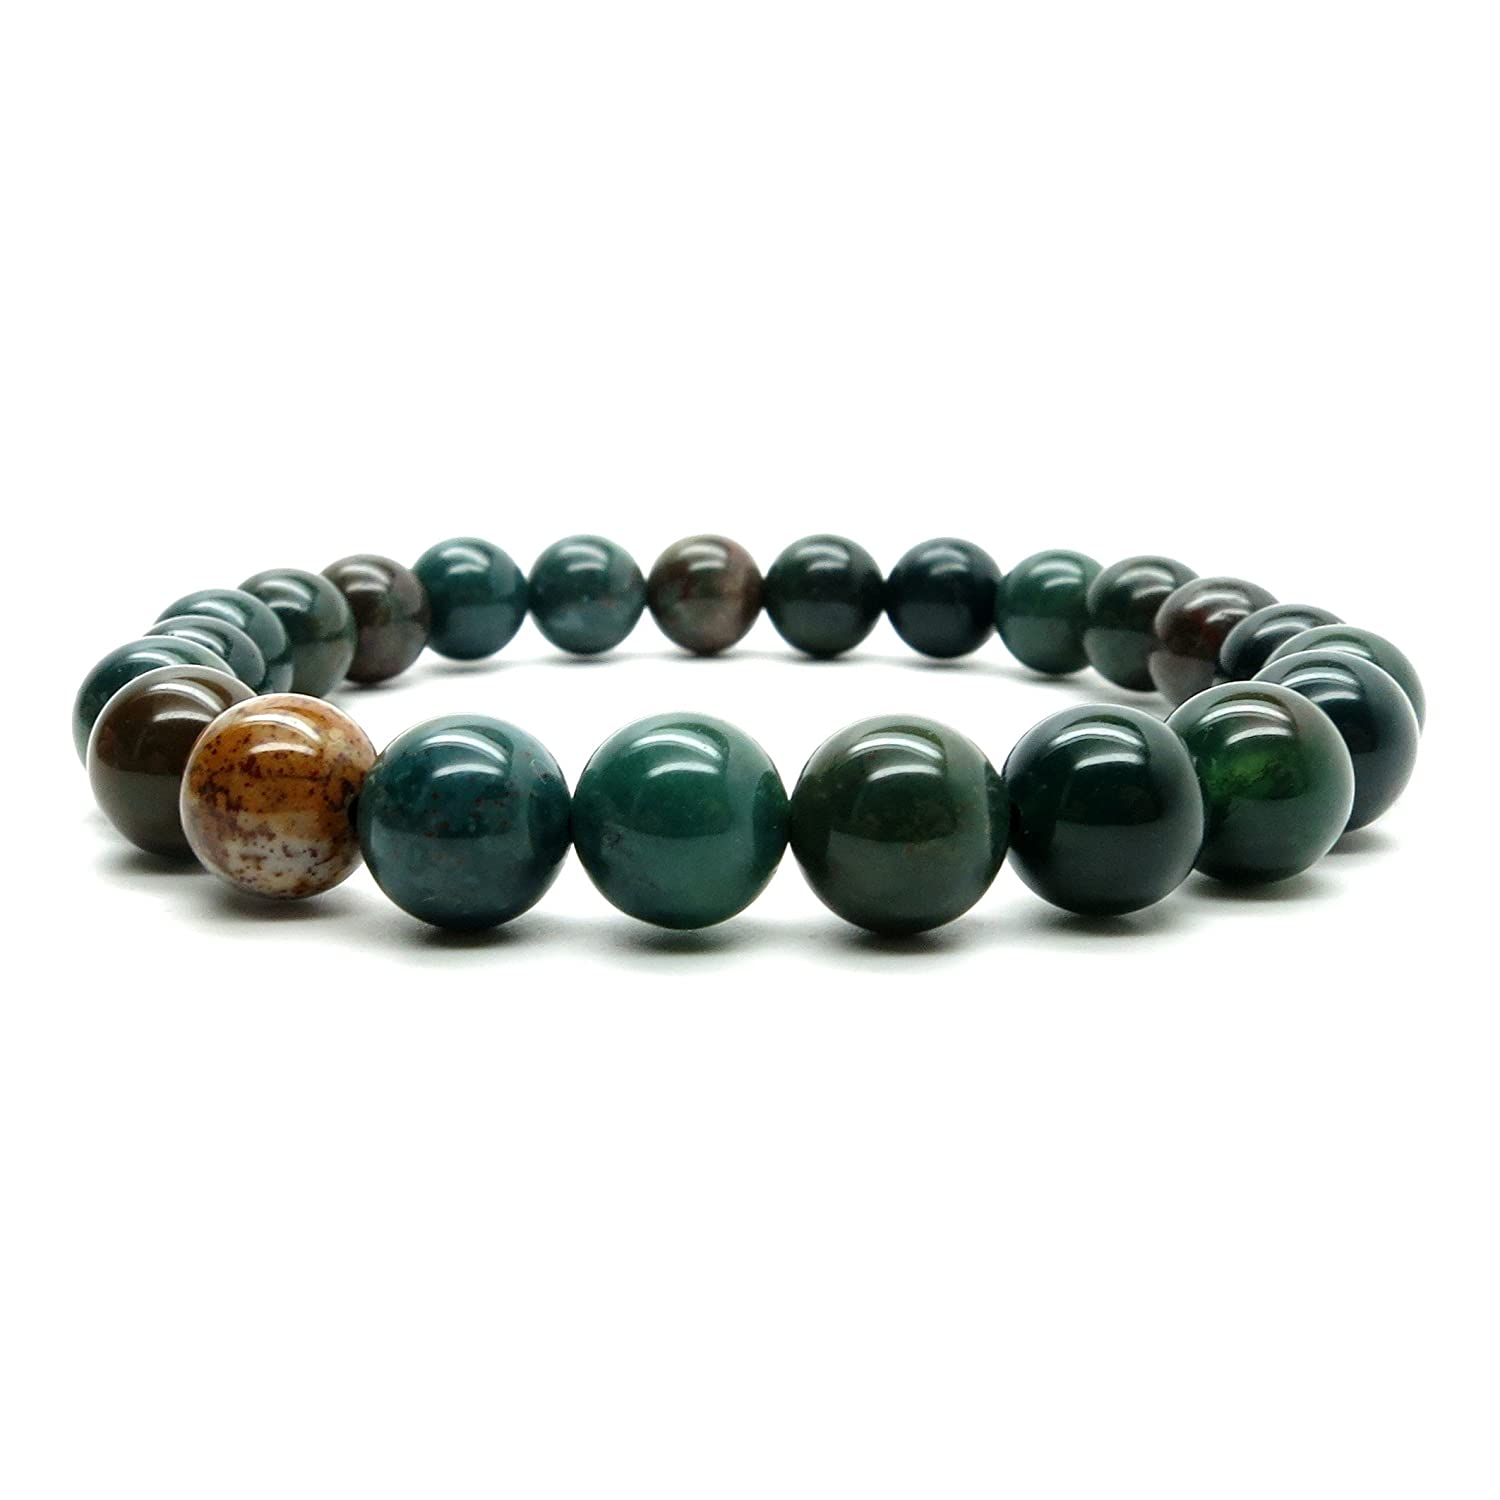 wrist align and to dhgate chakra balance yoga mala bracelets under chakras stone product bracelet best energy stretch the natural healing green